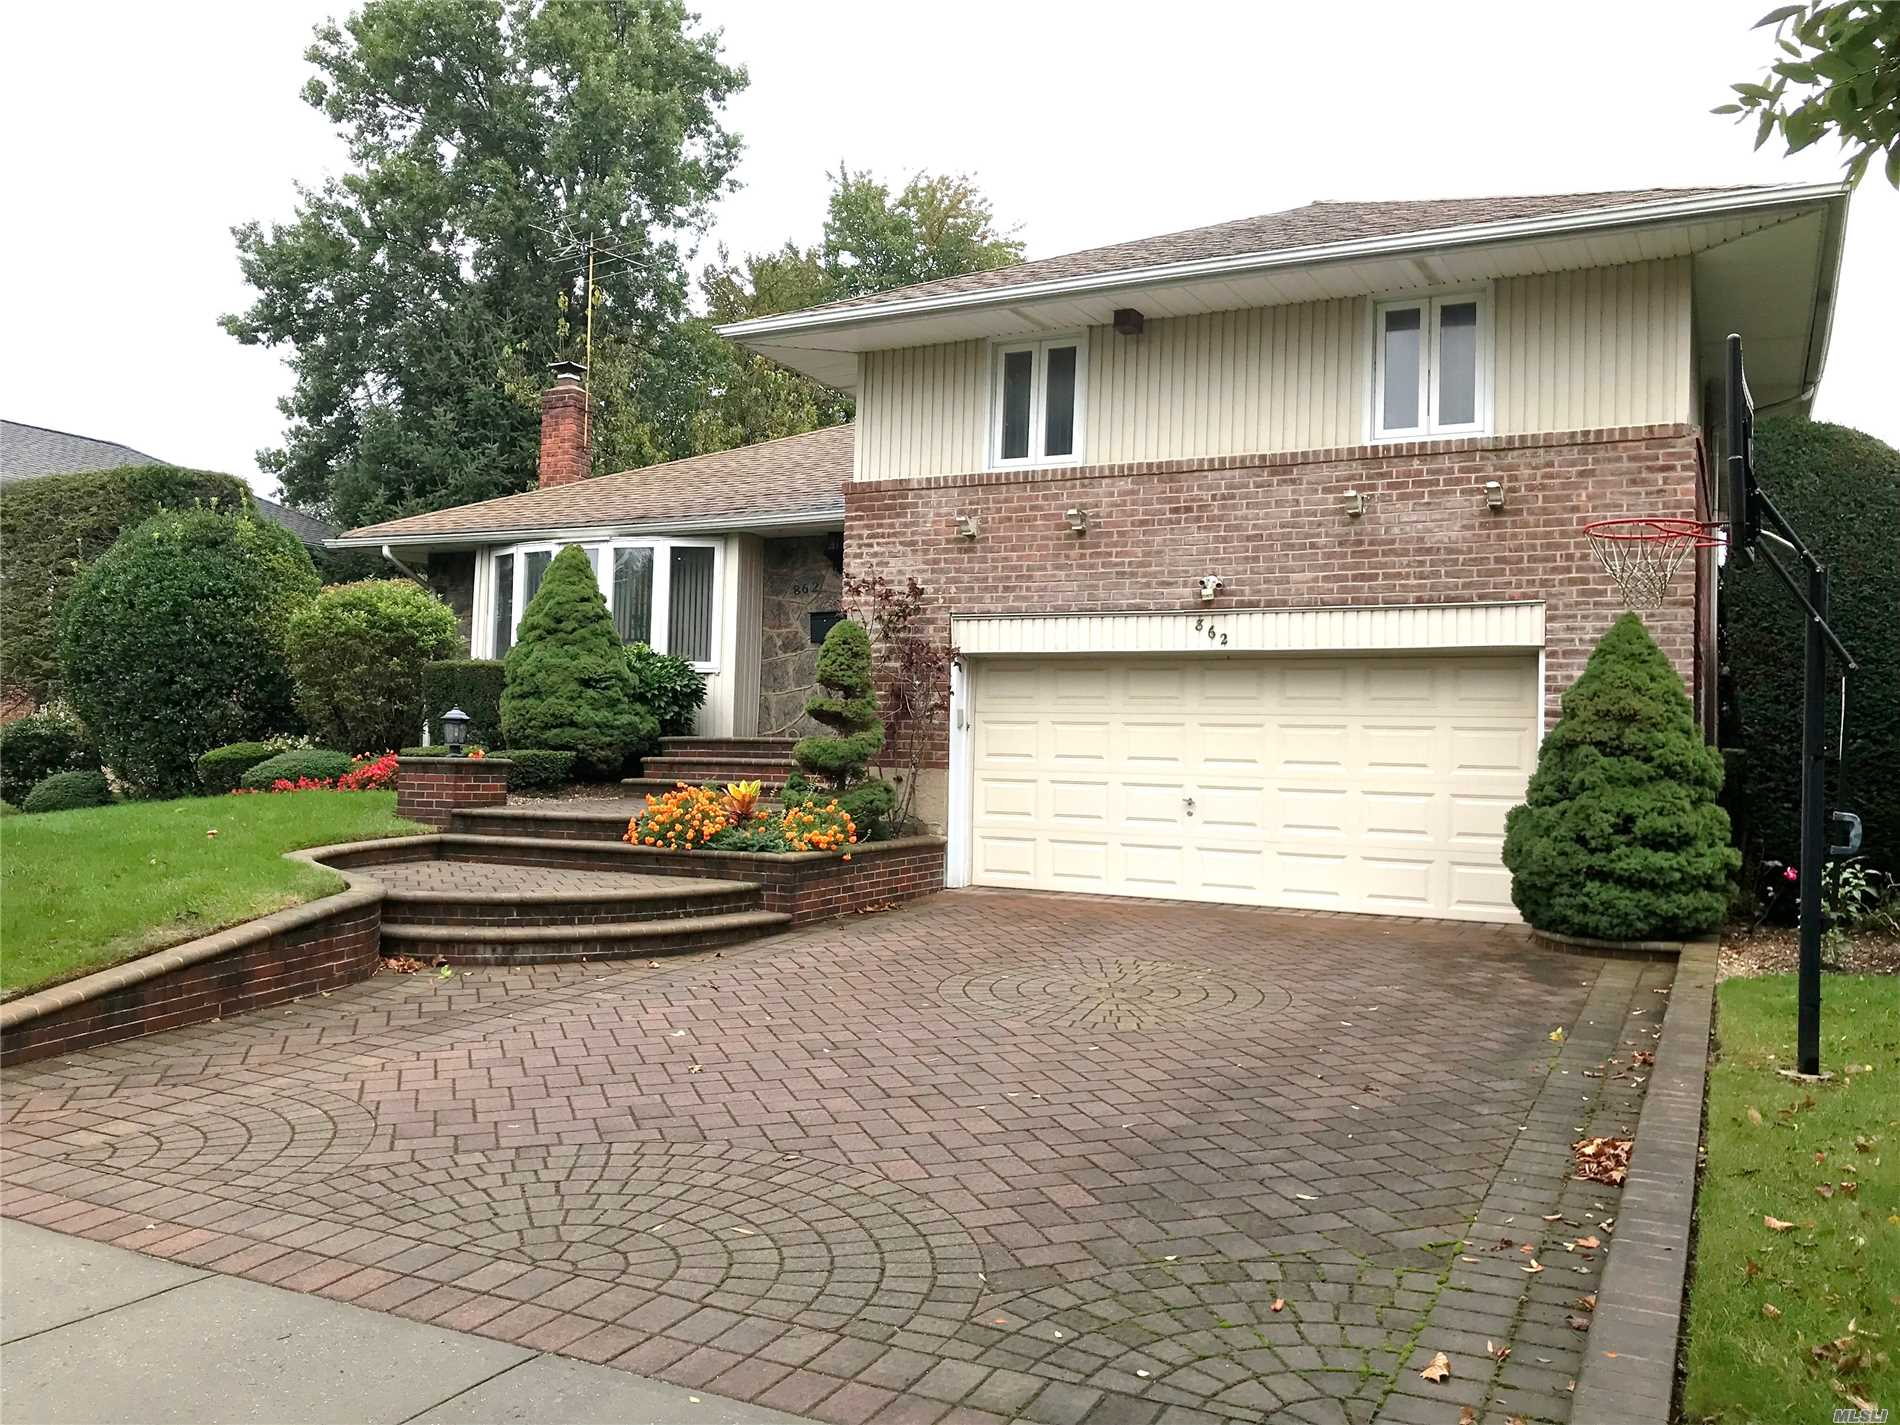 Split In Salisbury/East Meadow Schools With 3 Bedrooms, 2.5 Baths, Full Finished Basement And 2 Car Garage.